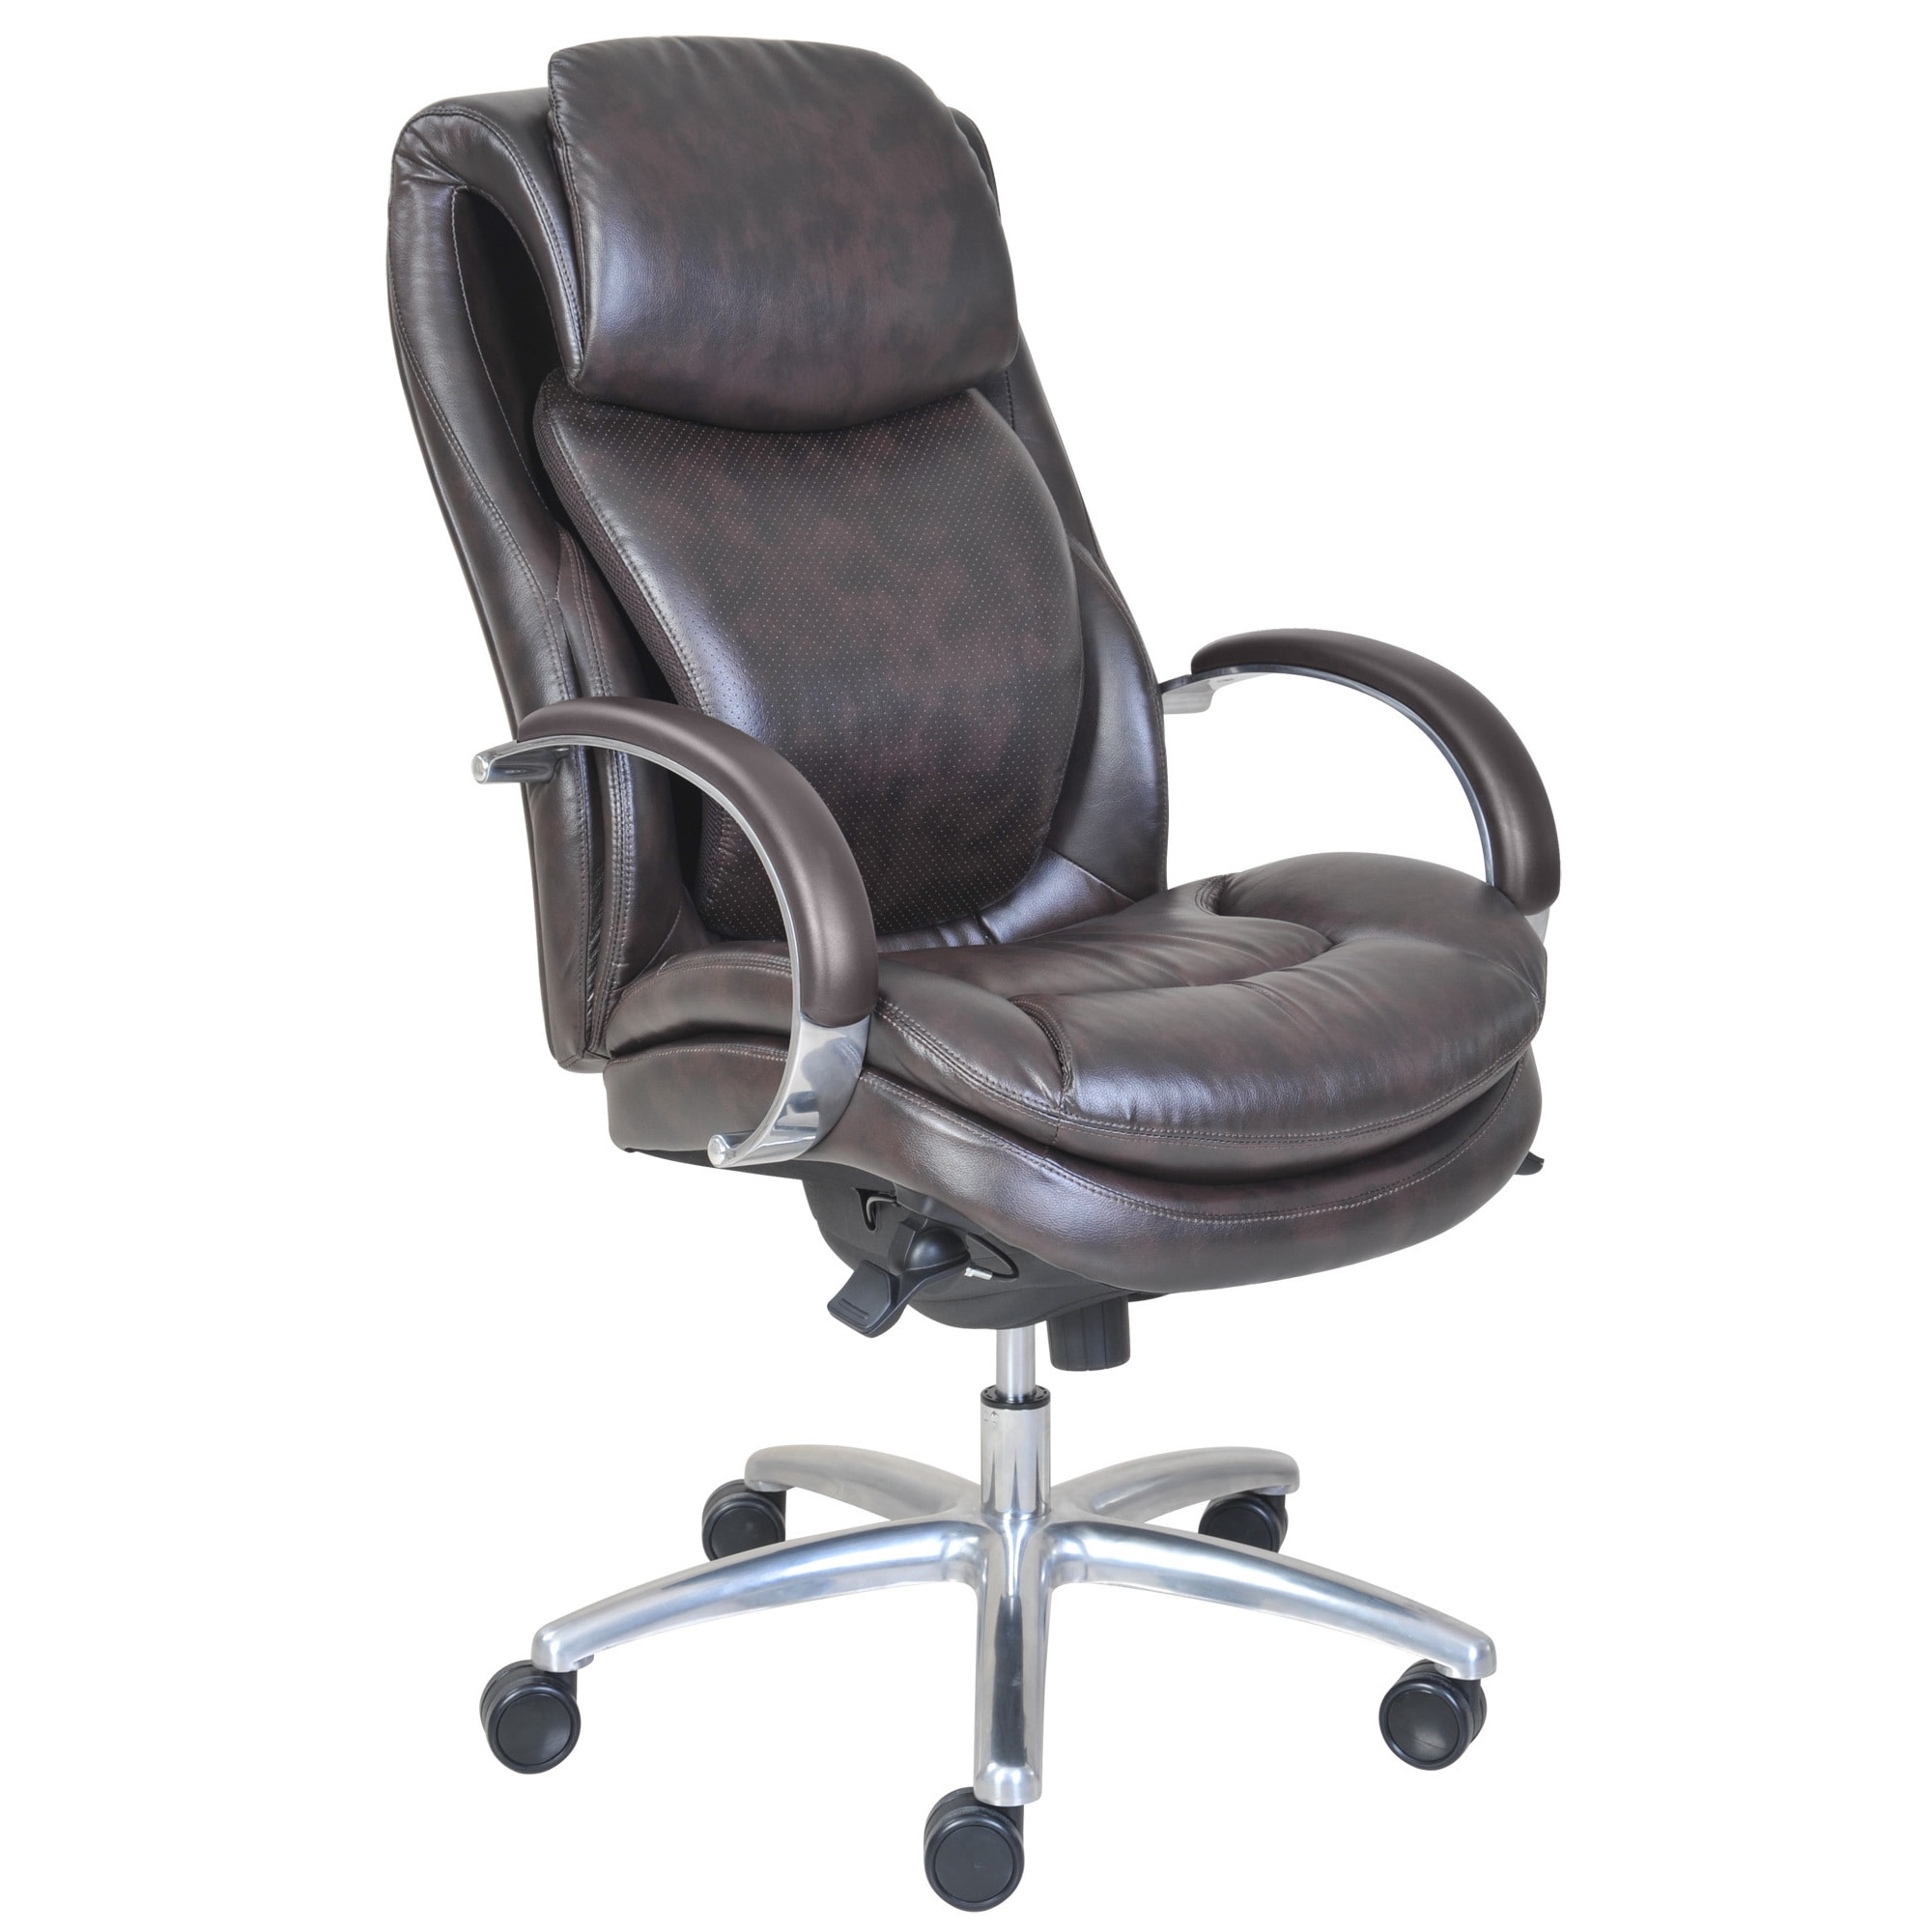 Serta Wellness By Design Air Commercial Series 100 Executive Puresoft Faux  Leather Chair   Free Shipping Today   Overstock   17213095